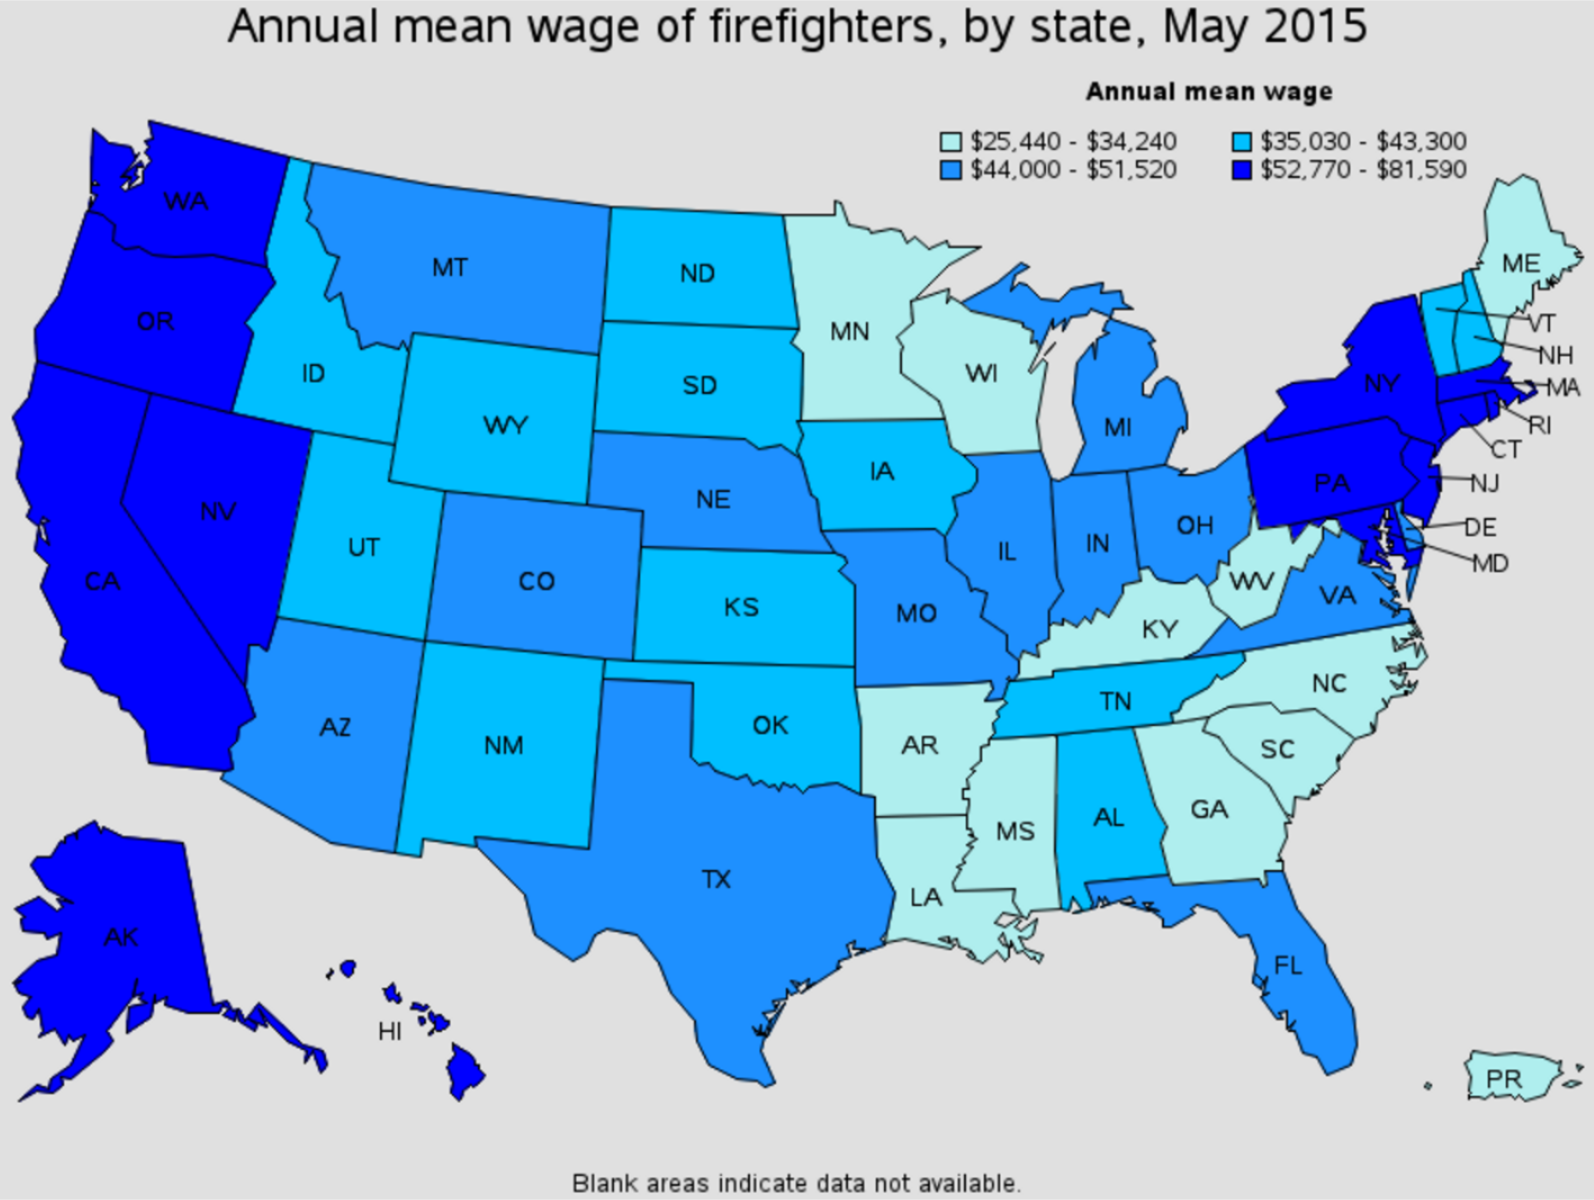 firefighter average salary by state Woodhull Illinois